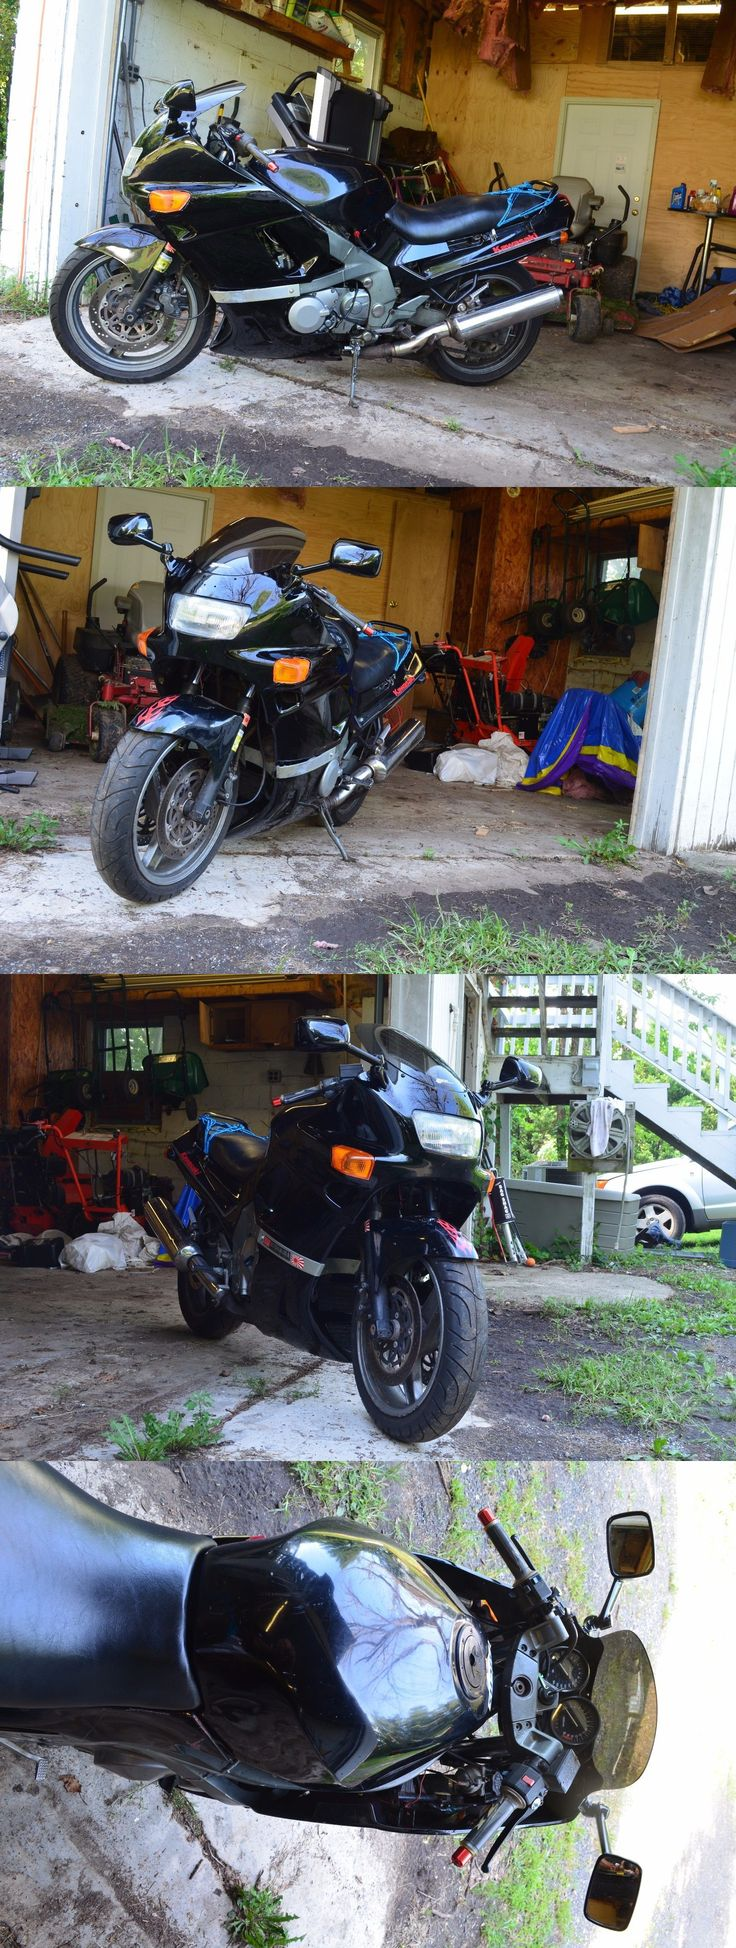 Motorcycles: 1990 Kawasaki Ninja 1990 Kawasaki Ninja Zx 600 -> BUY IT NOW ONLY: $1395 on eBay!